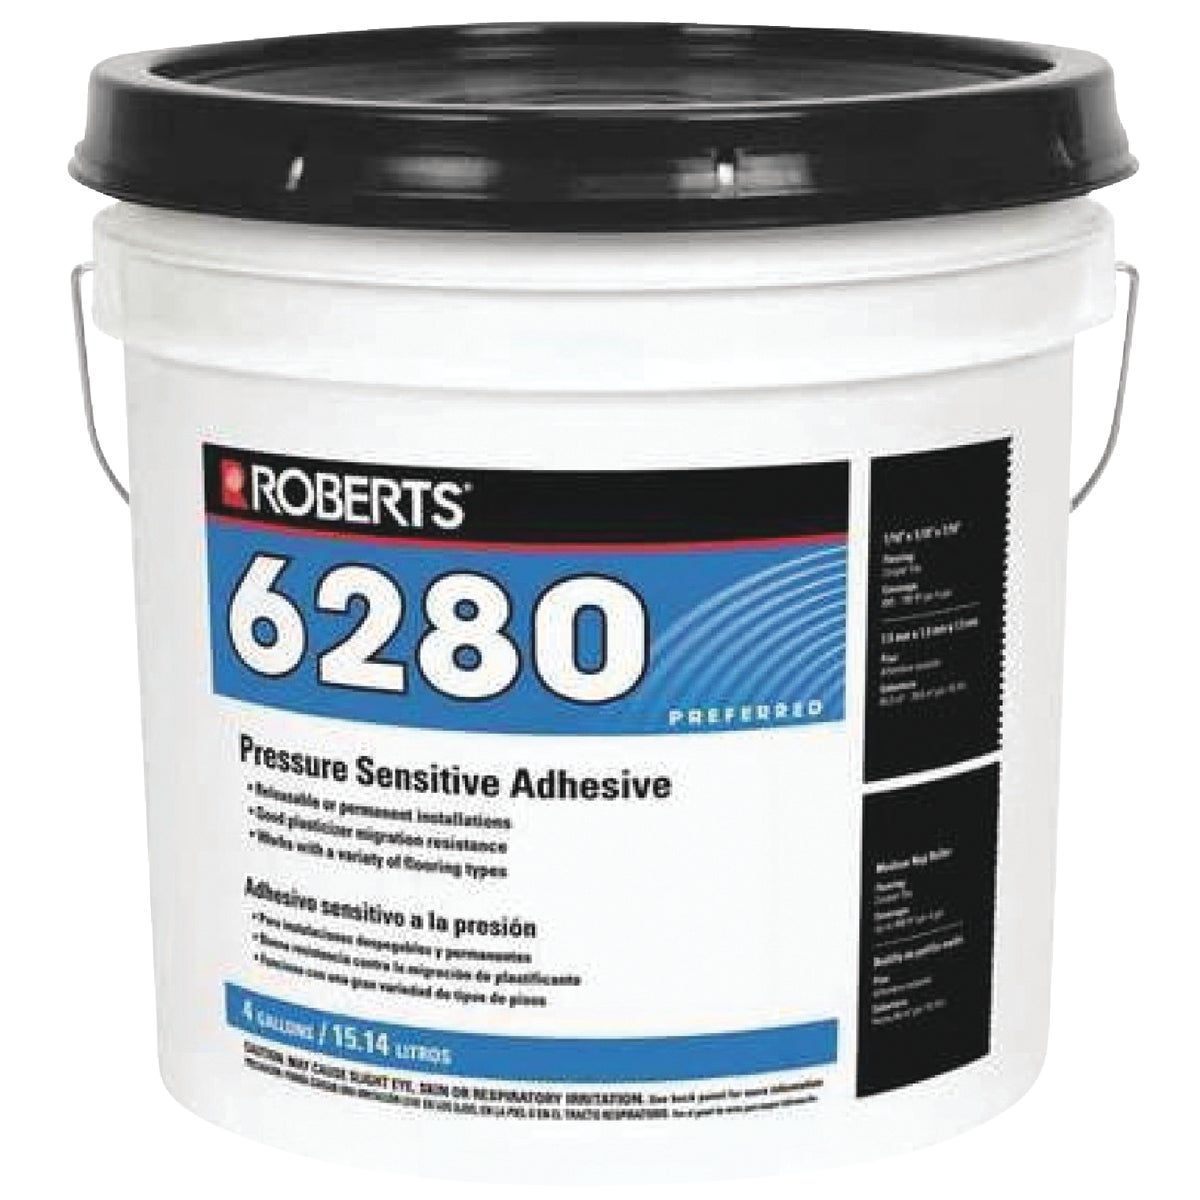 4GAL PRESS SENS ADHESIVE - R6280-4 by Qep Co Inc Roberts